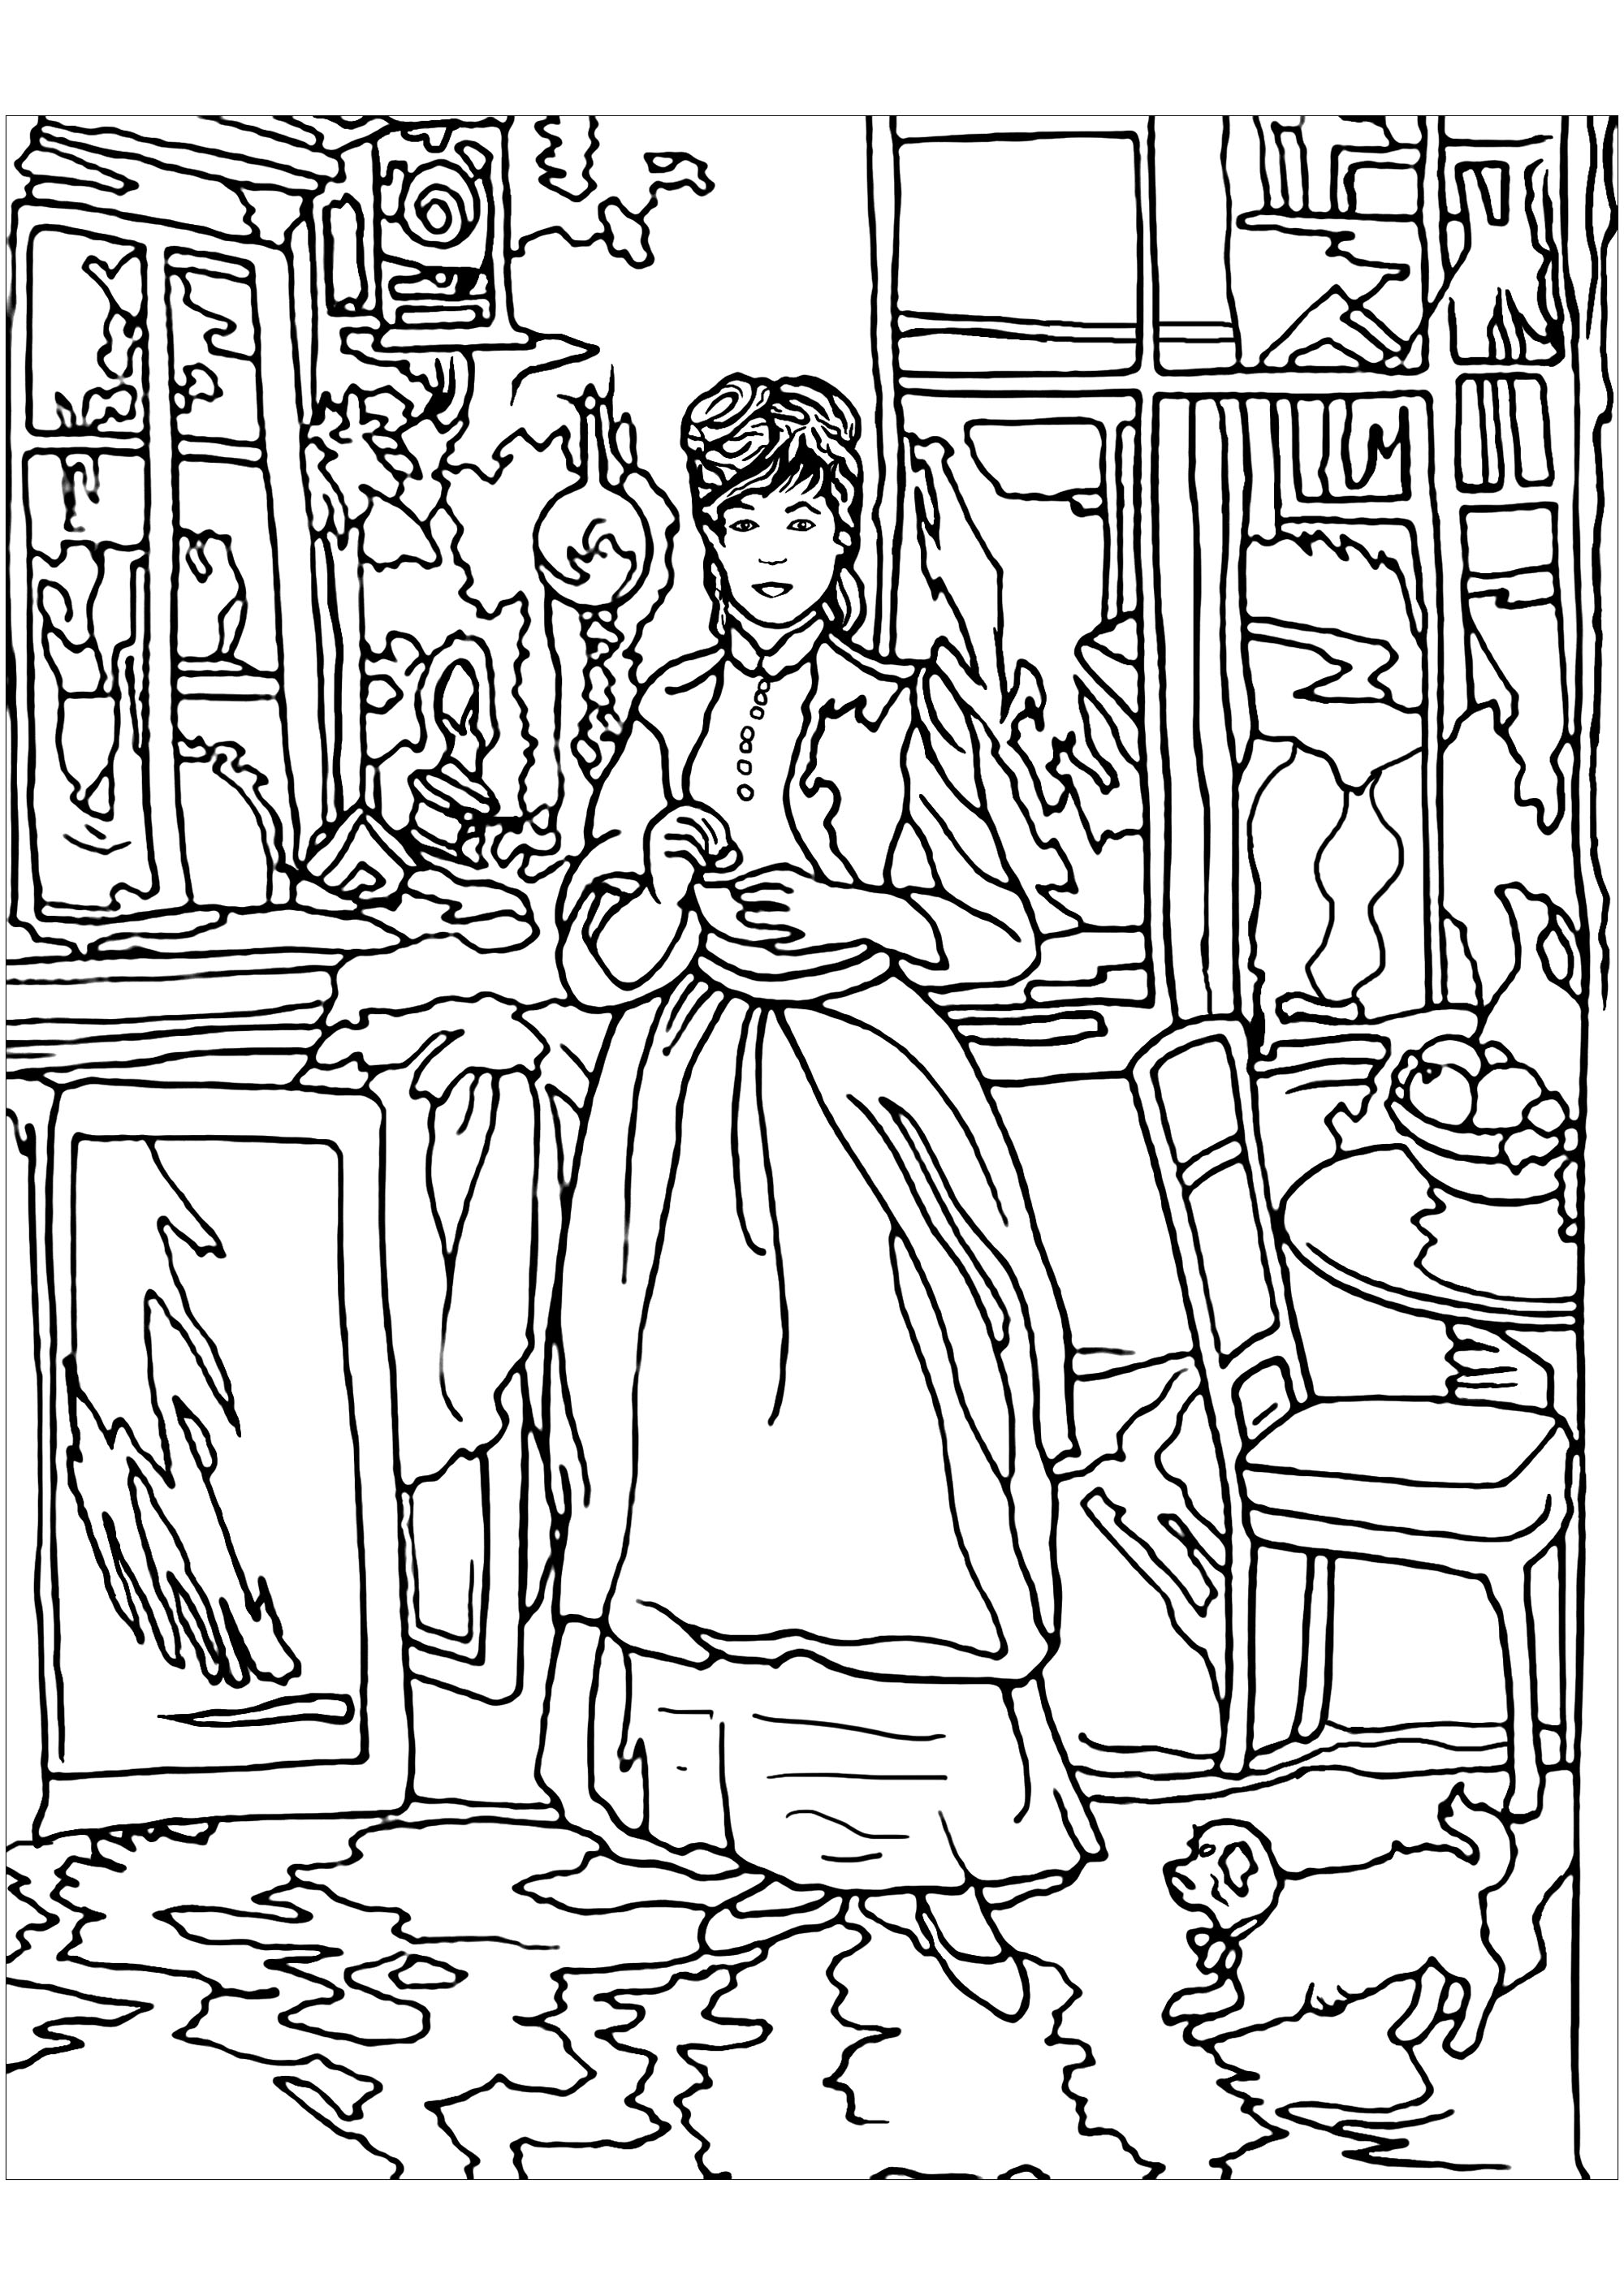 Coloring page inspired by a work by Impressionist painter Berthe Morisot : In the dinning room. Morisot's paintings reveal aspects of feminine life in the late nineteenth century, even private, intimate moments generally closed to male counterparts.